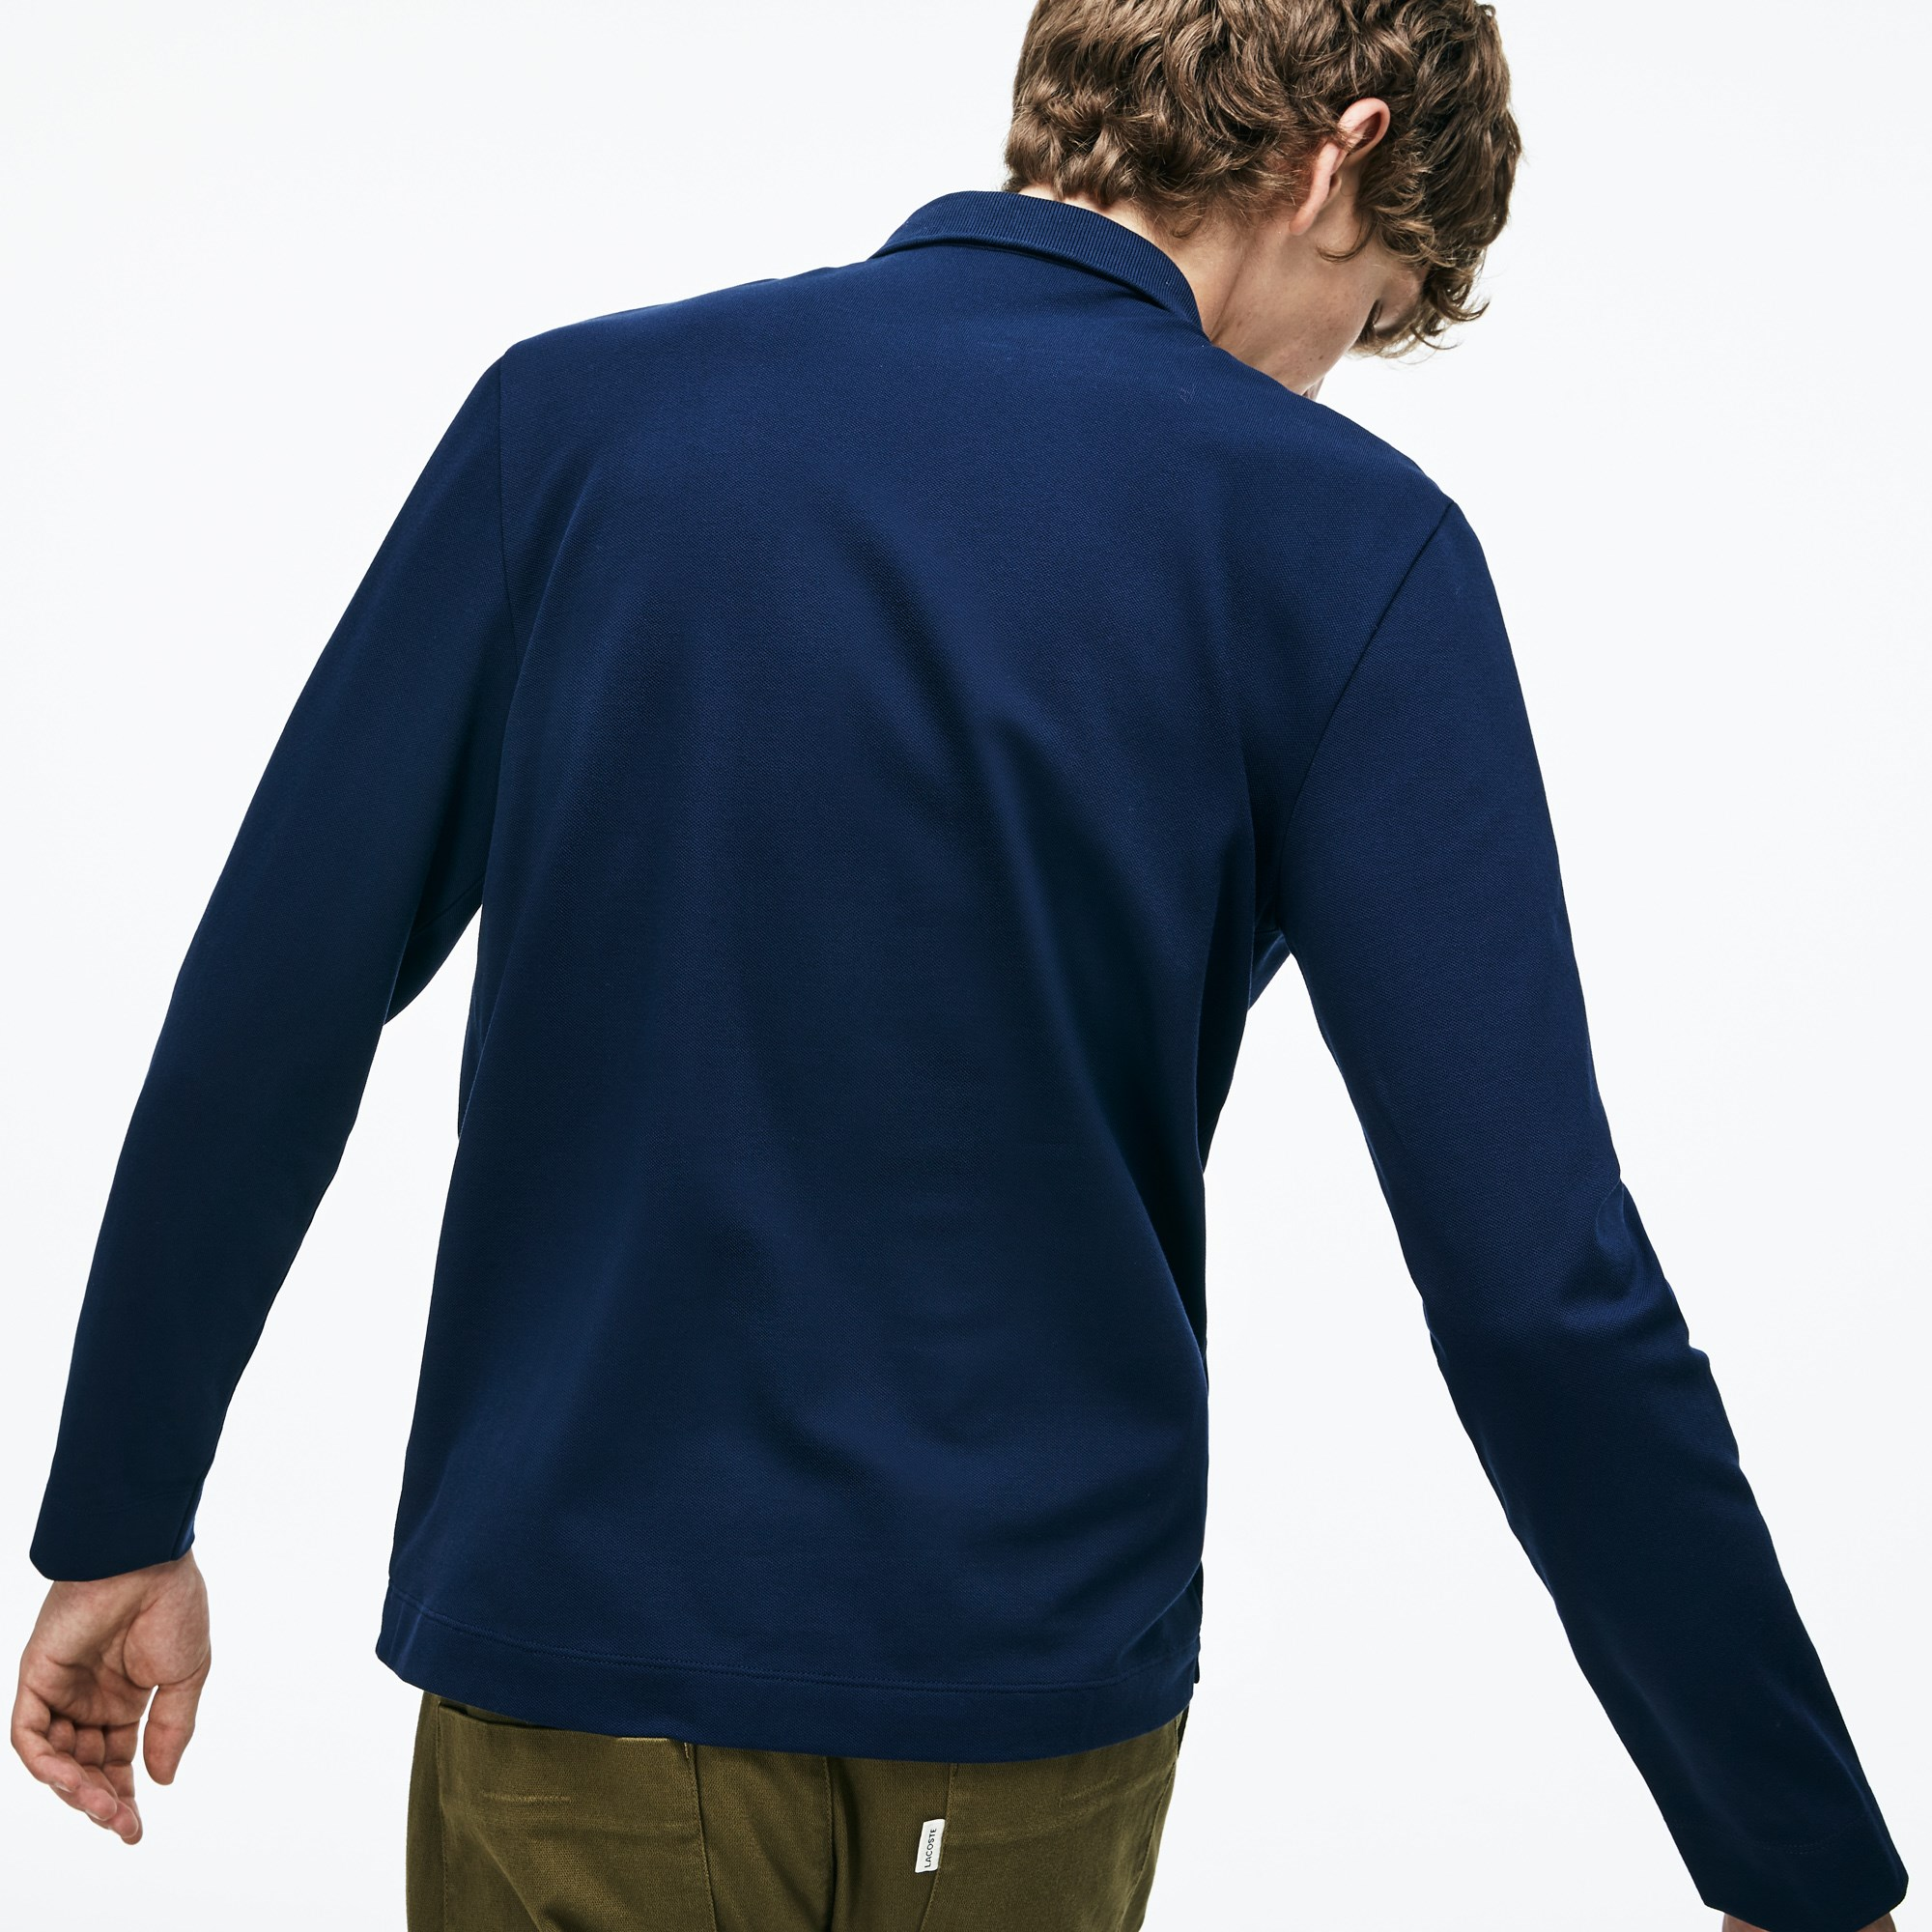 Lacoste - Paris Polo Regular Fit Lacoste à manches longues en piqué de coton stretch - 2